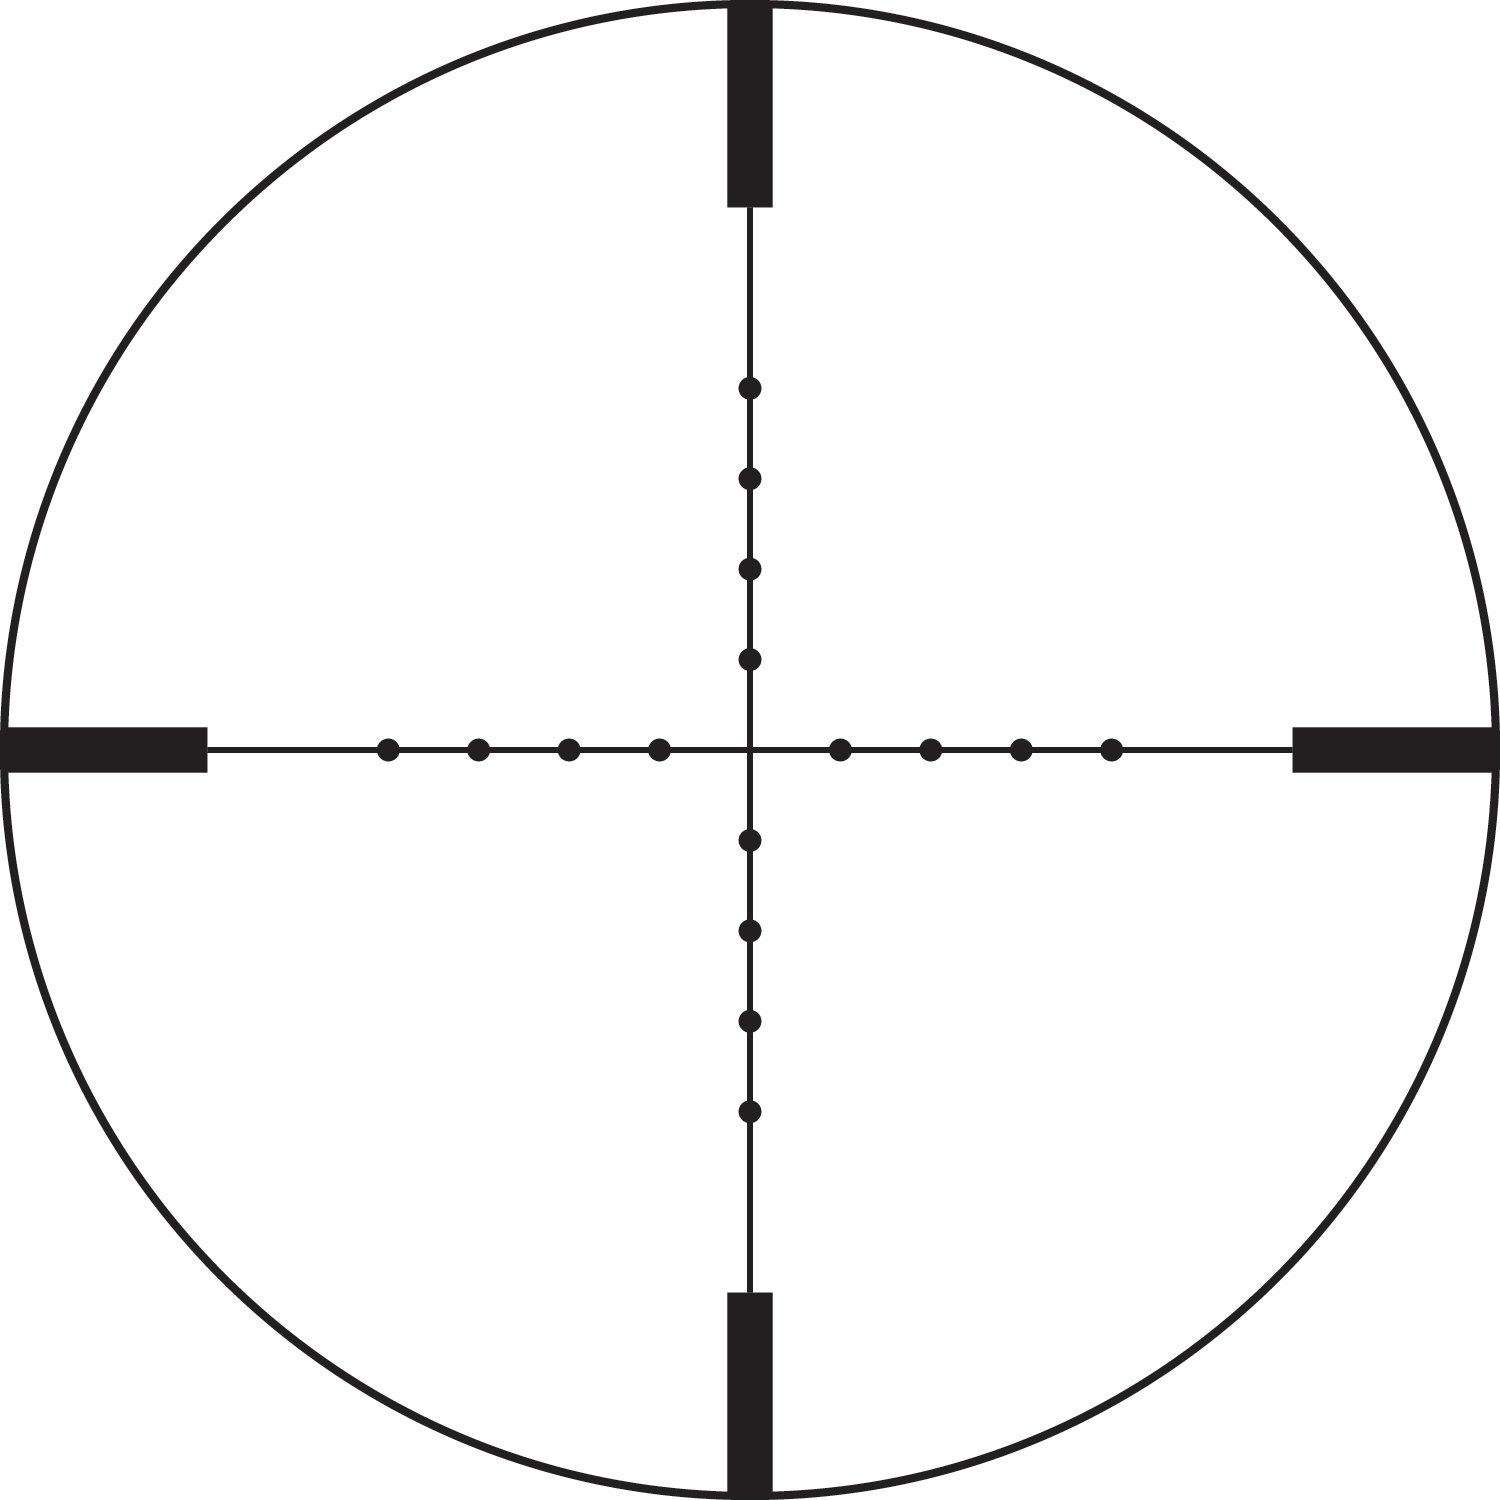 Vortex Optics Mil-Dot Reticle, The Best Optics